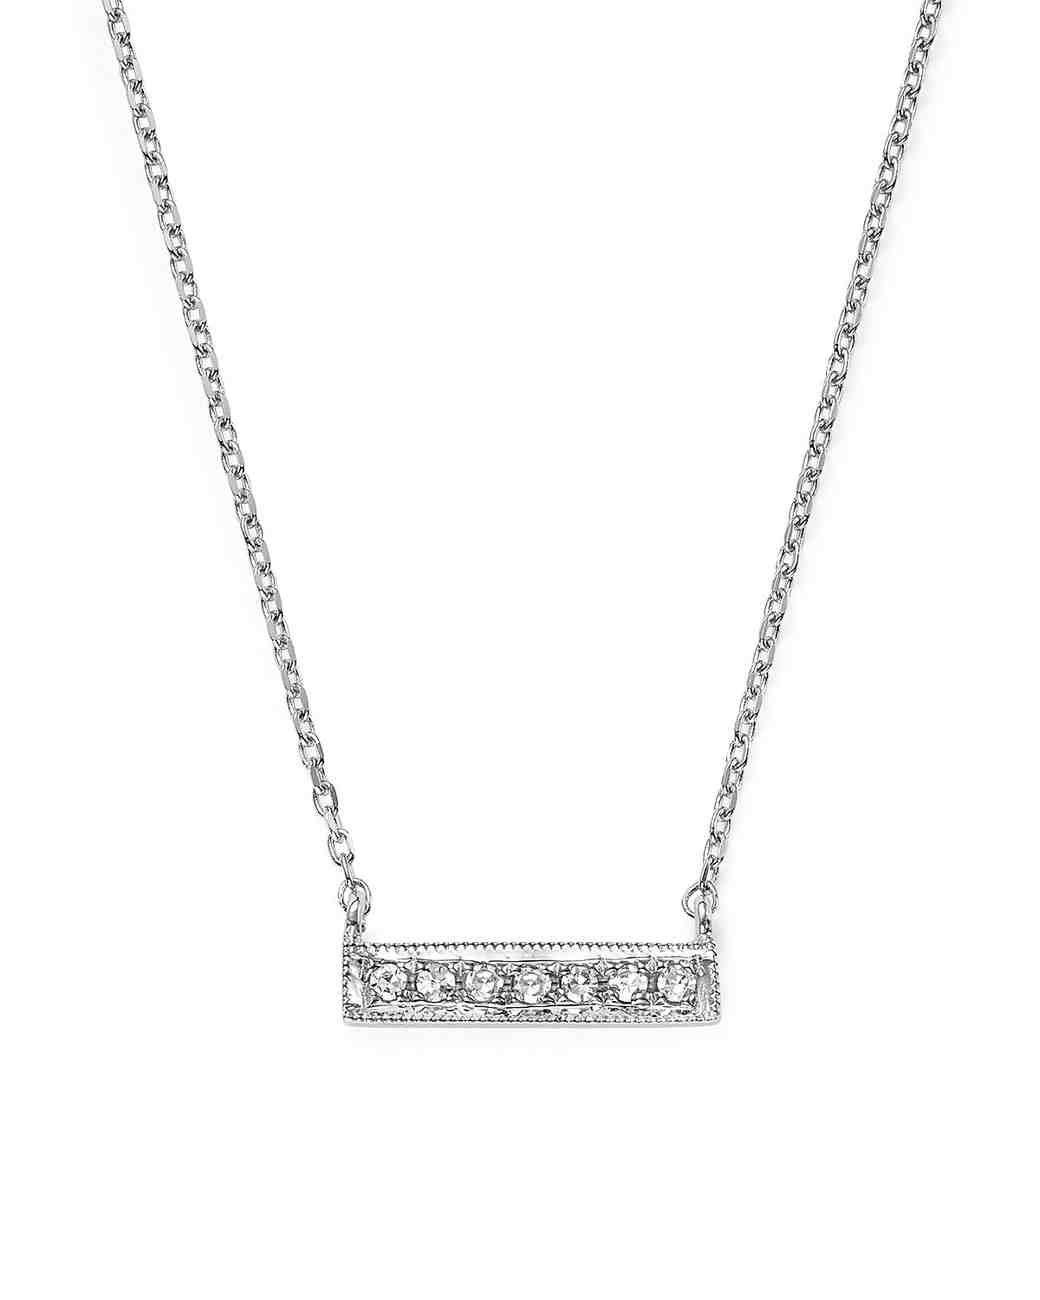 bar pendent necklace